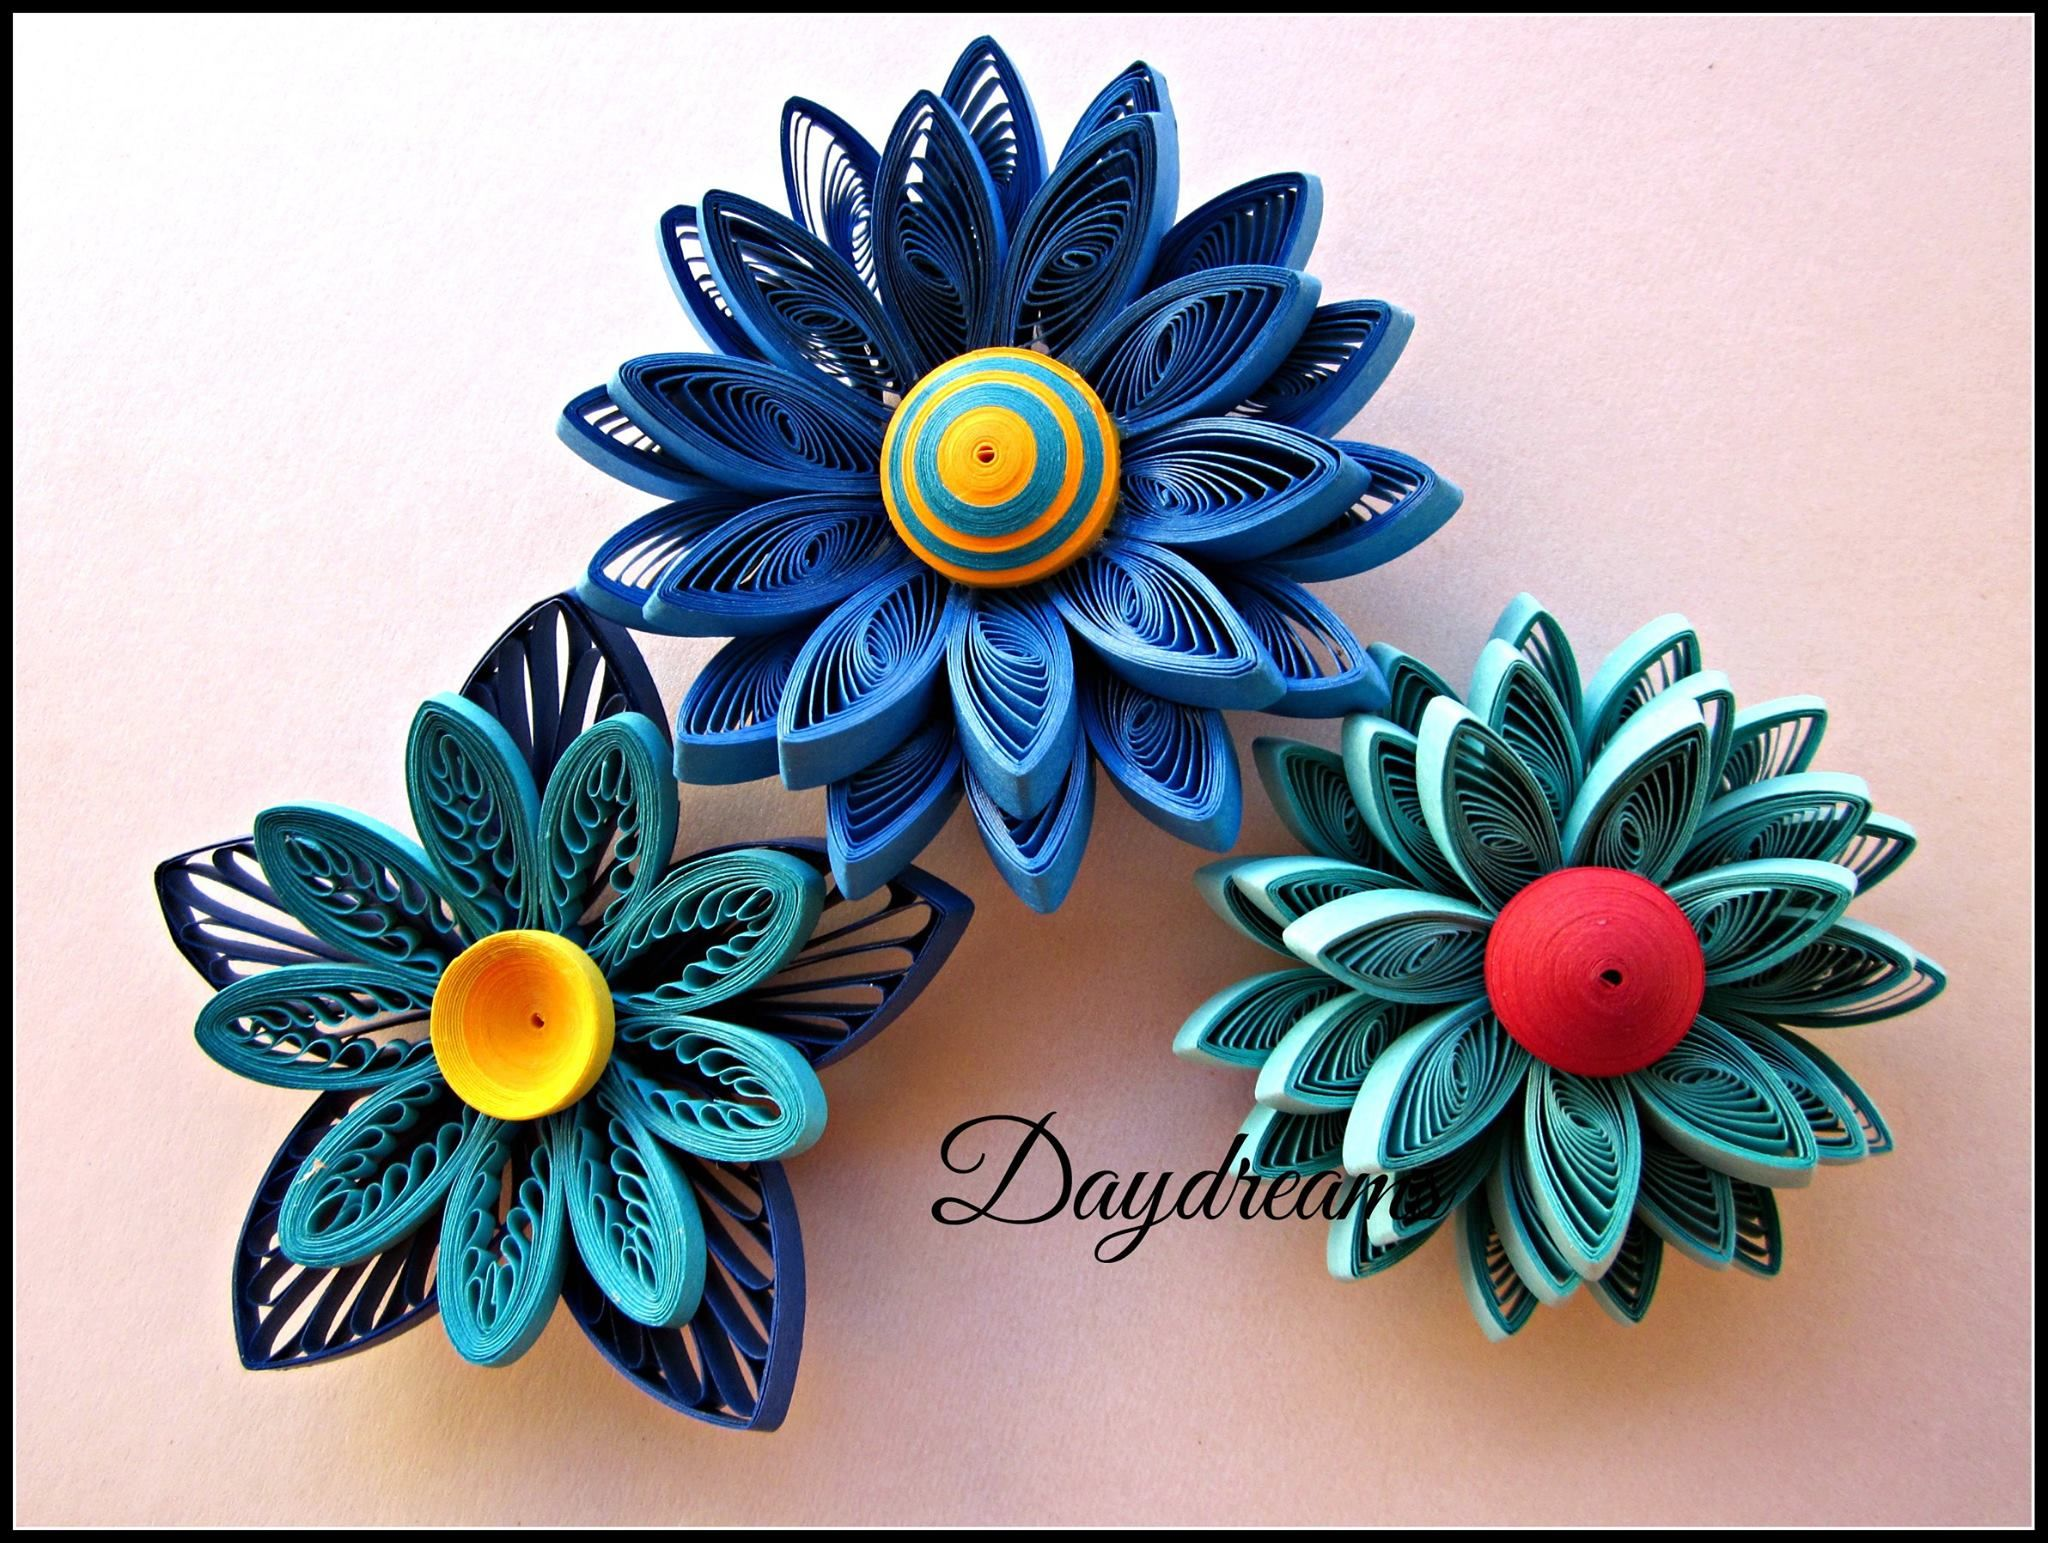 1091476610448668188736665882916131256022477og 20481543 find this pin and more on quilling mightylinksfo